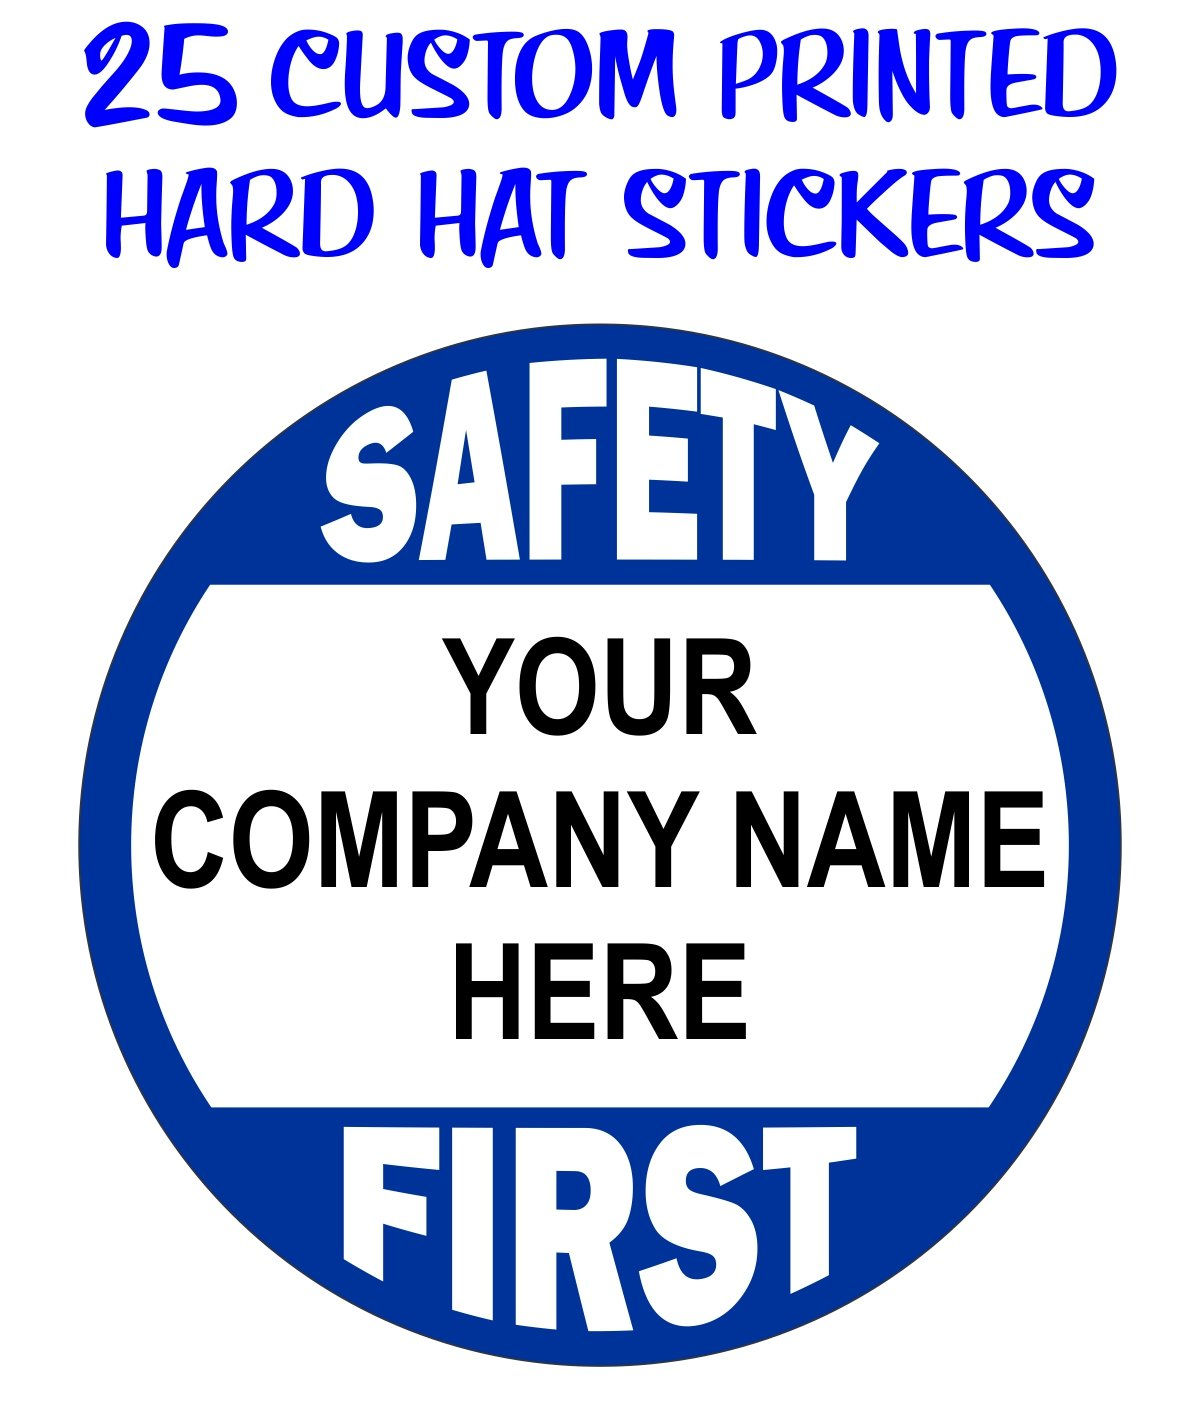 25 pack custom printed safety first hard hat stickers customize with your personalized company text business name decals labels badges forman